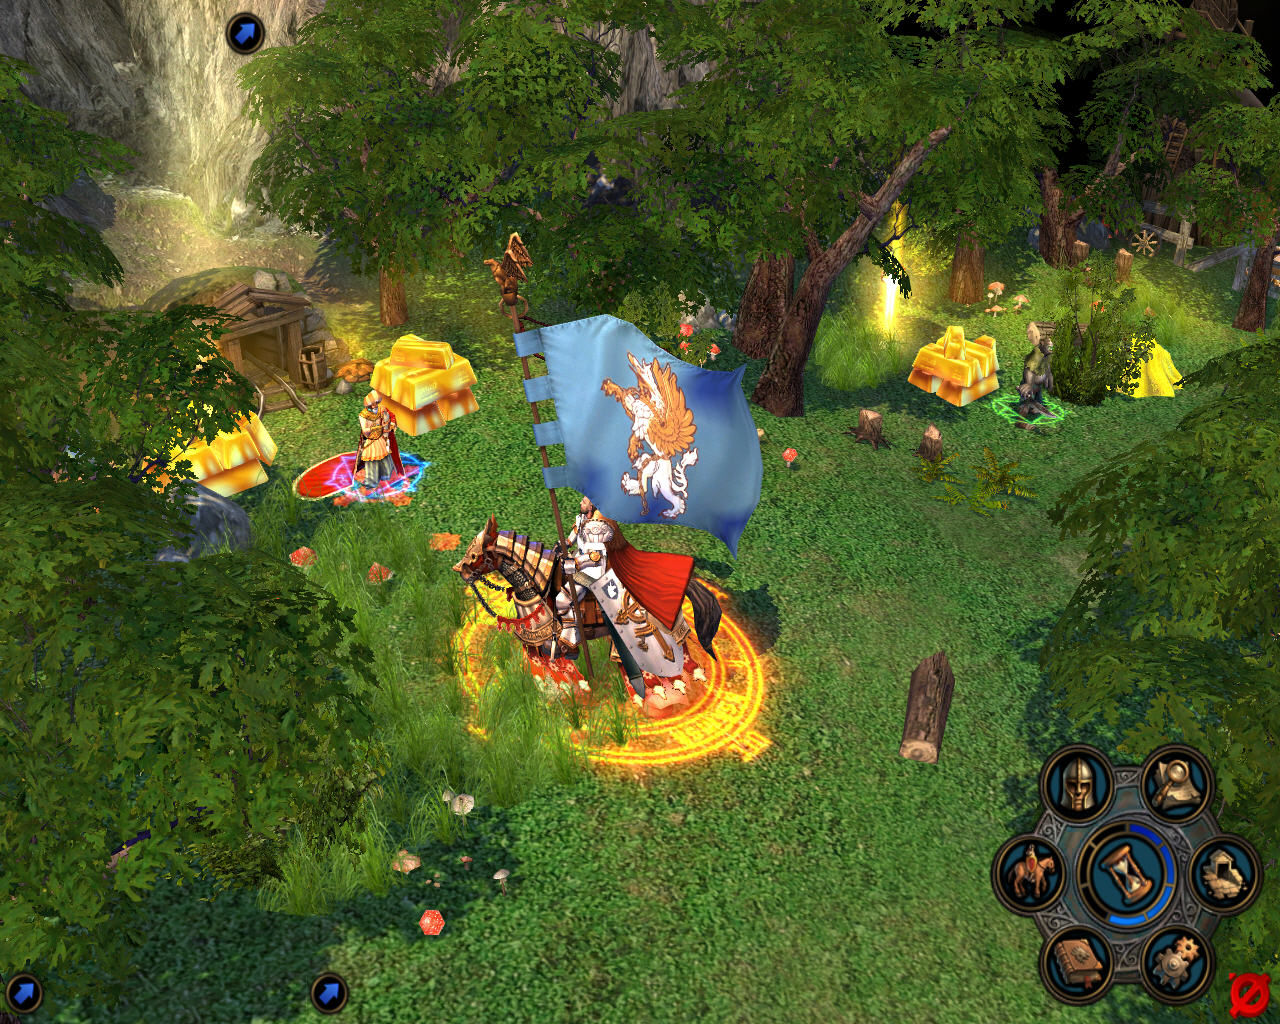 heroes of might and magic v 8 - Game cũ mà hay: Heroes of Might and Magic V